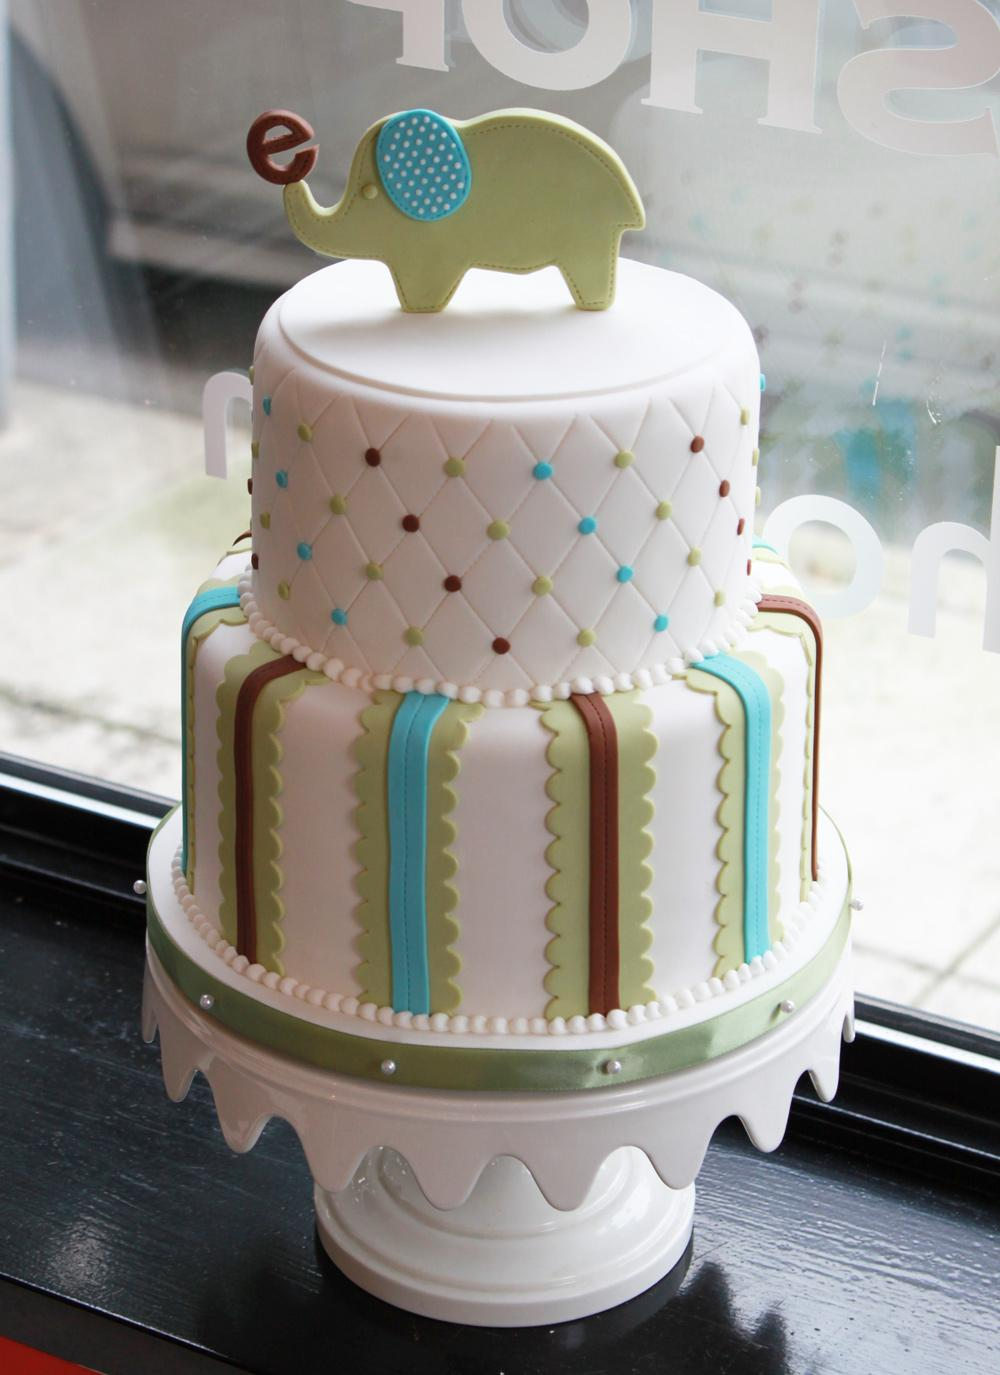 Design Your Own Cake At Publix : 100+ [ Publix Anniversary Cakes ] Publix Wedding Cake ...